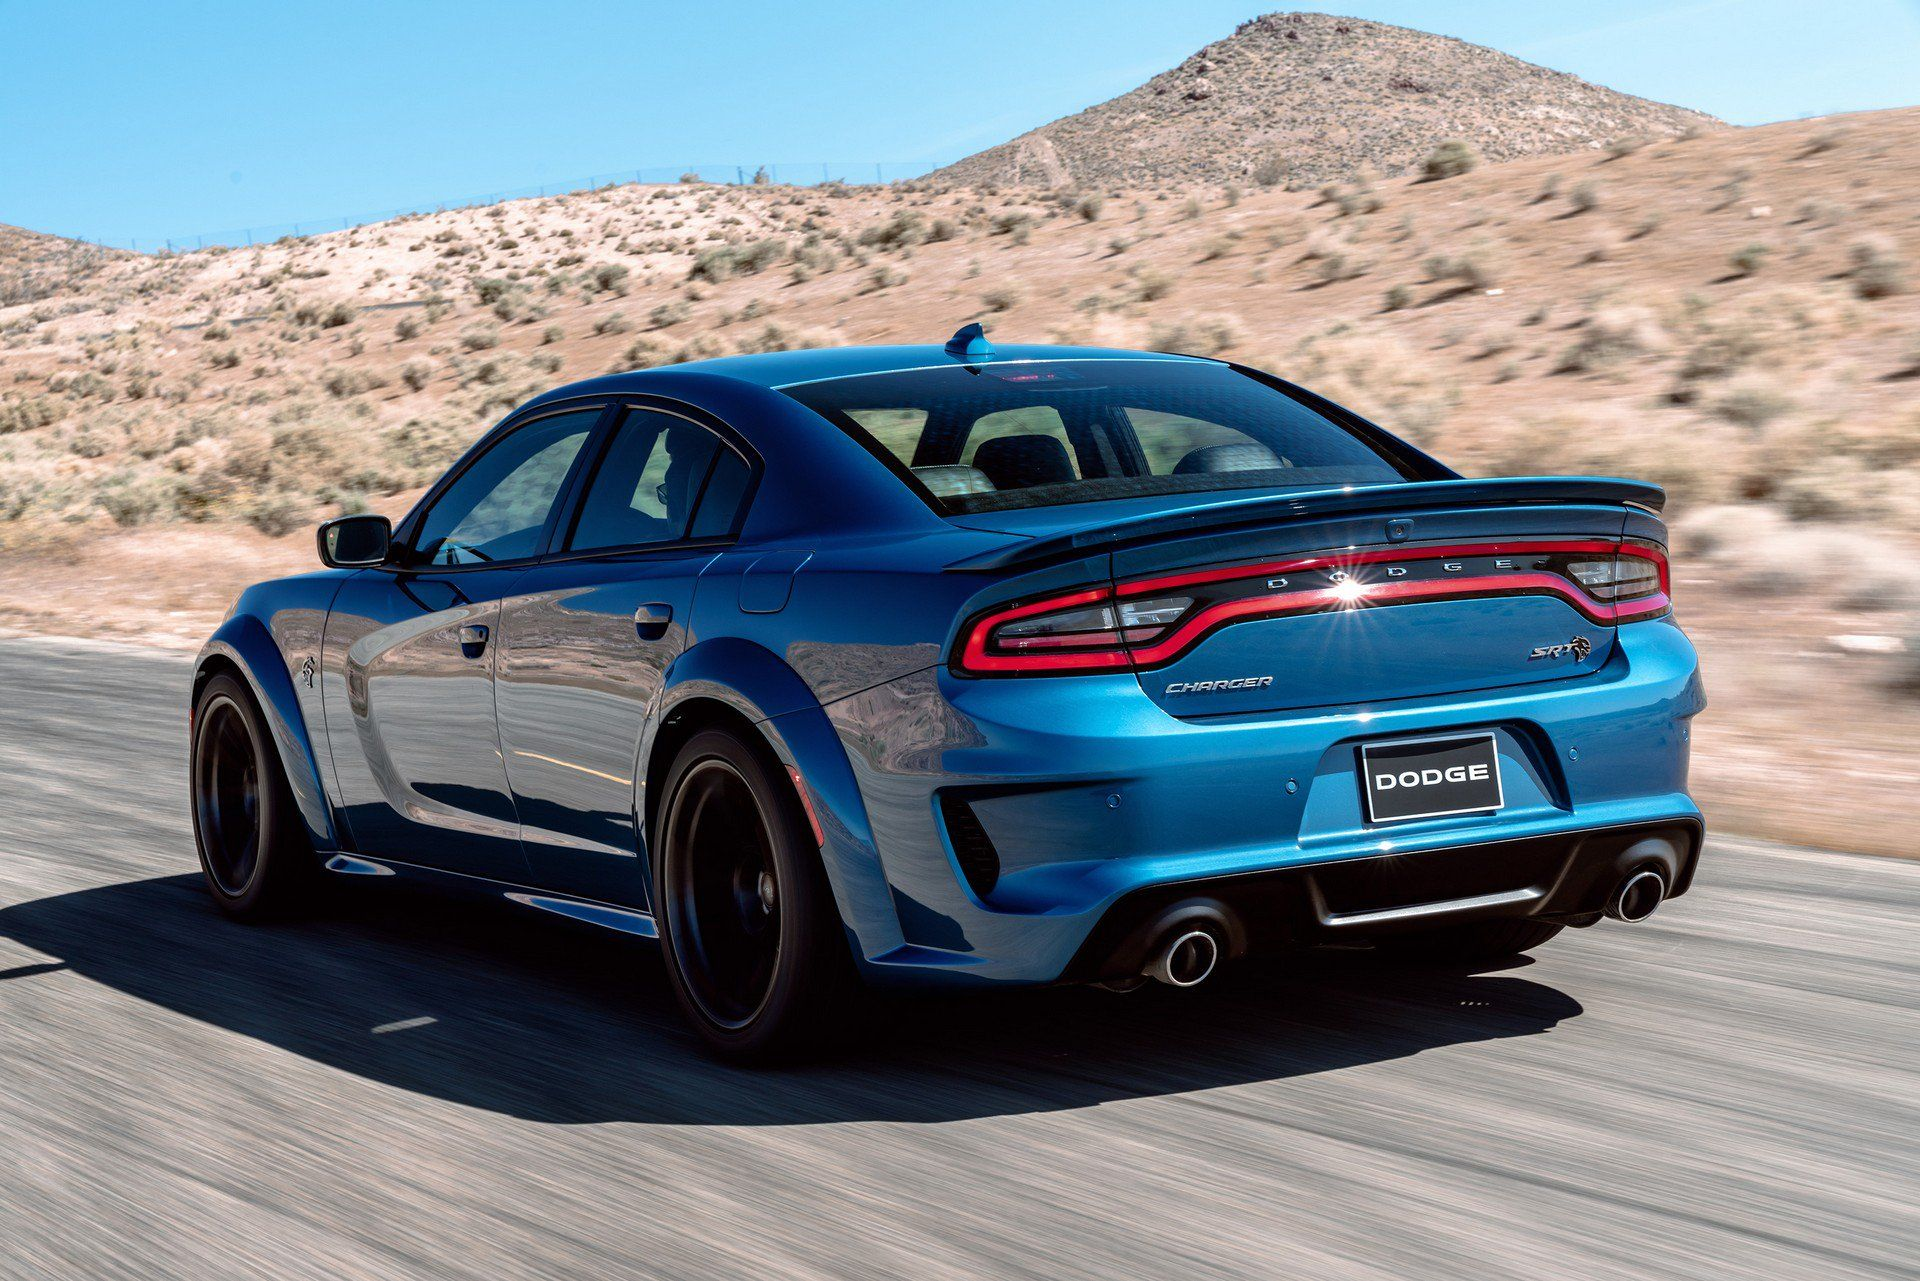 2020 Dodge Charger Scat Pack And Srt Hellcat Widebody Debut With Up To 707 Hp Carscoops Dodge Charger Srt Charger Srt Charger Srt Hellcat